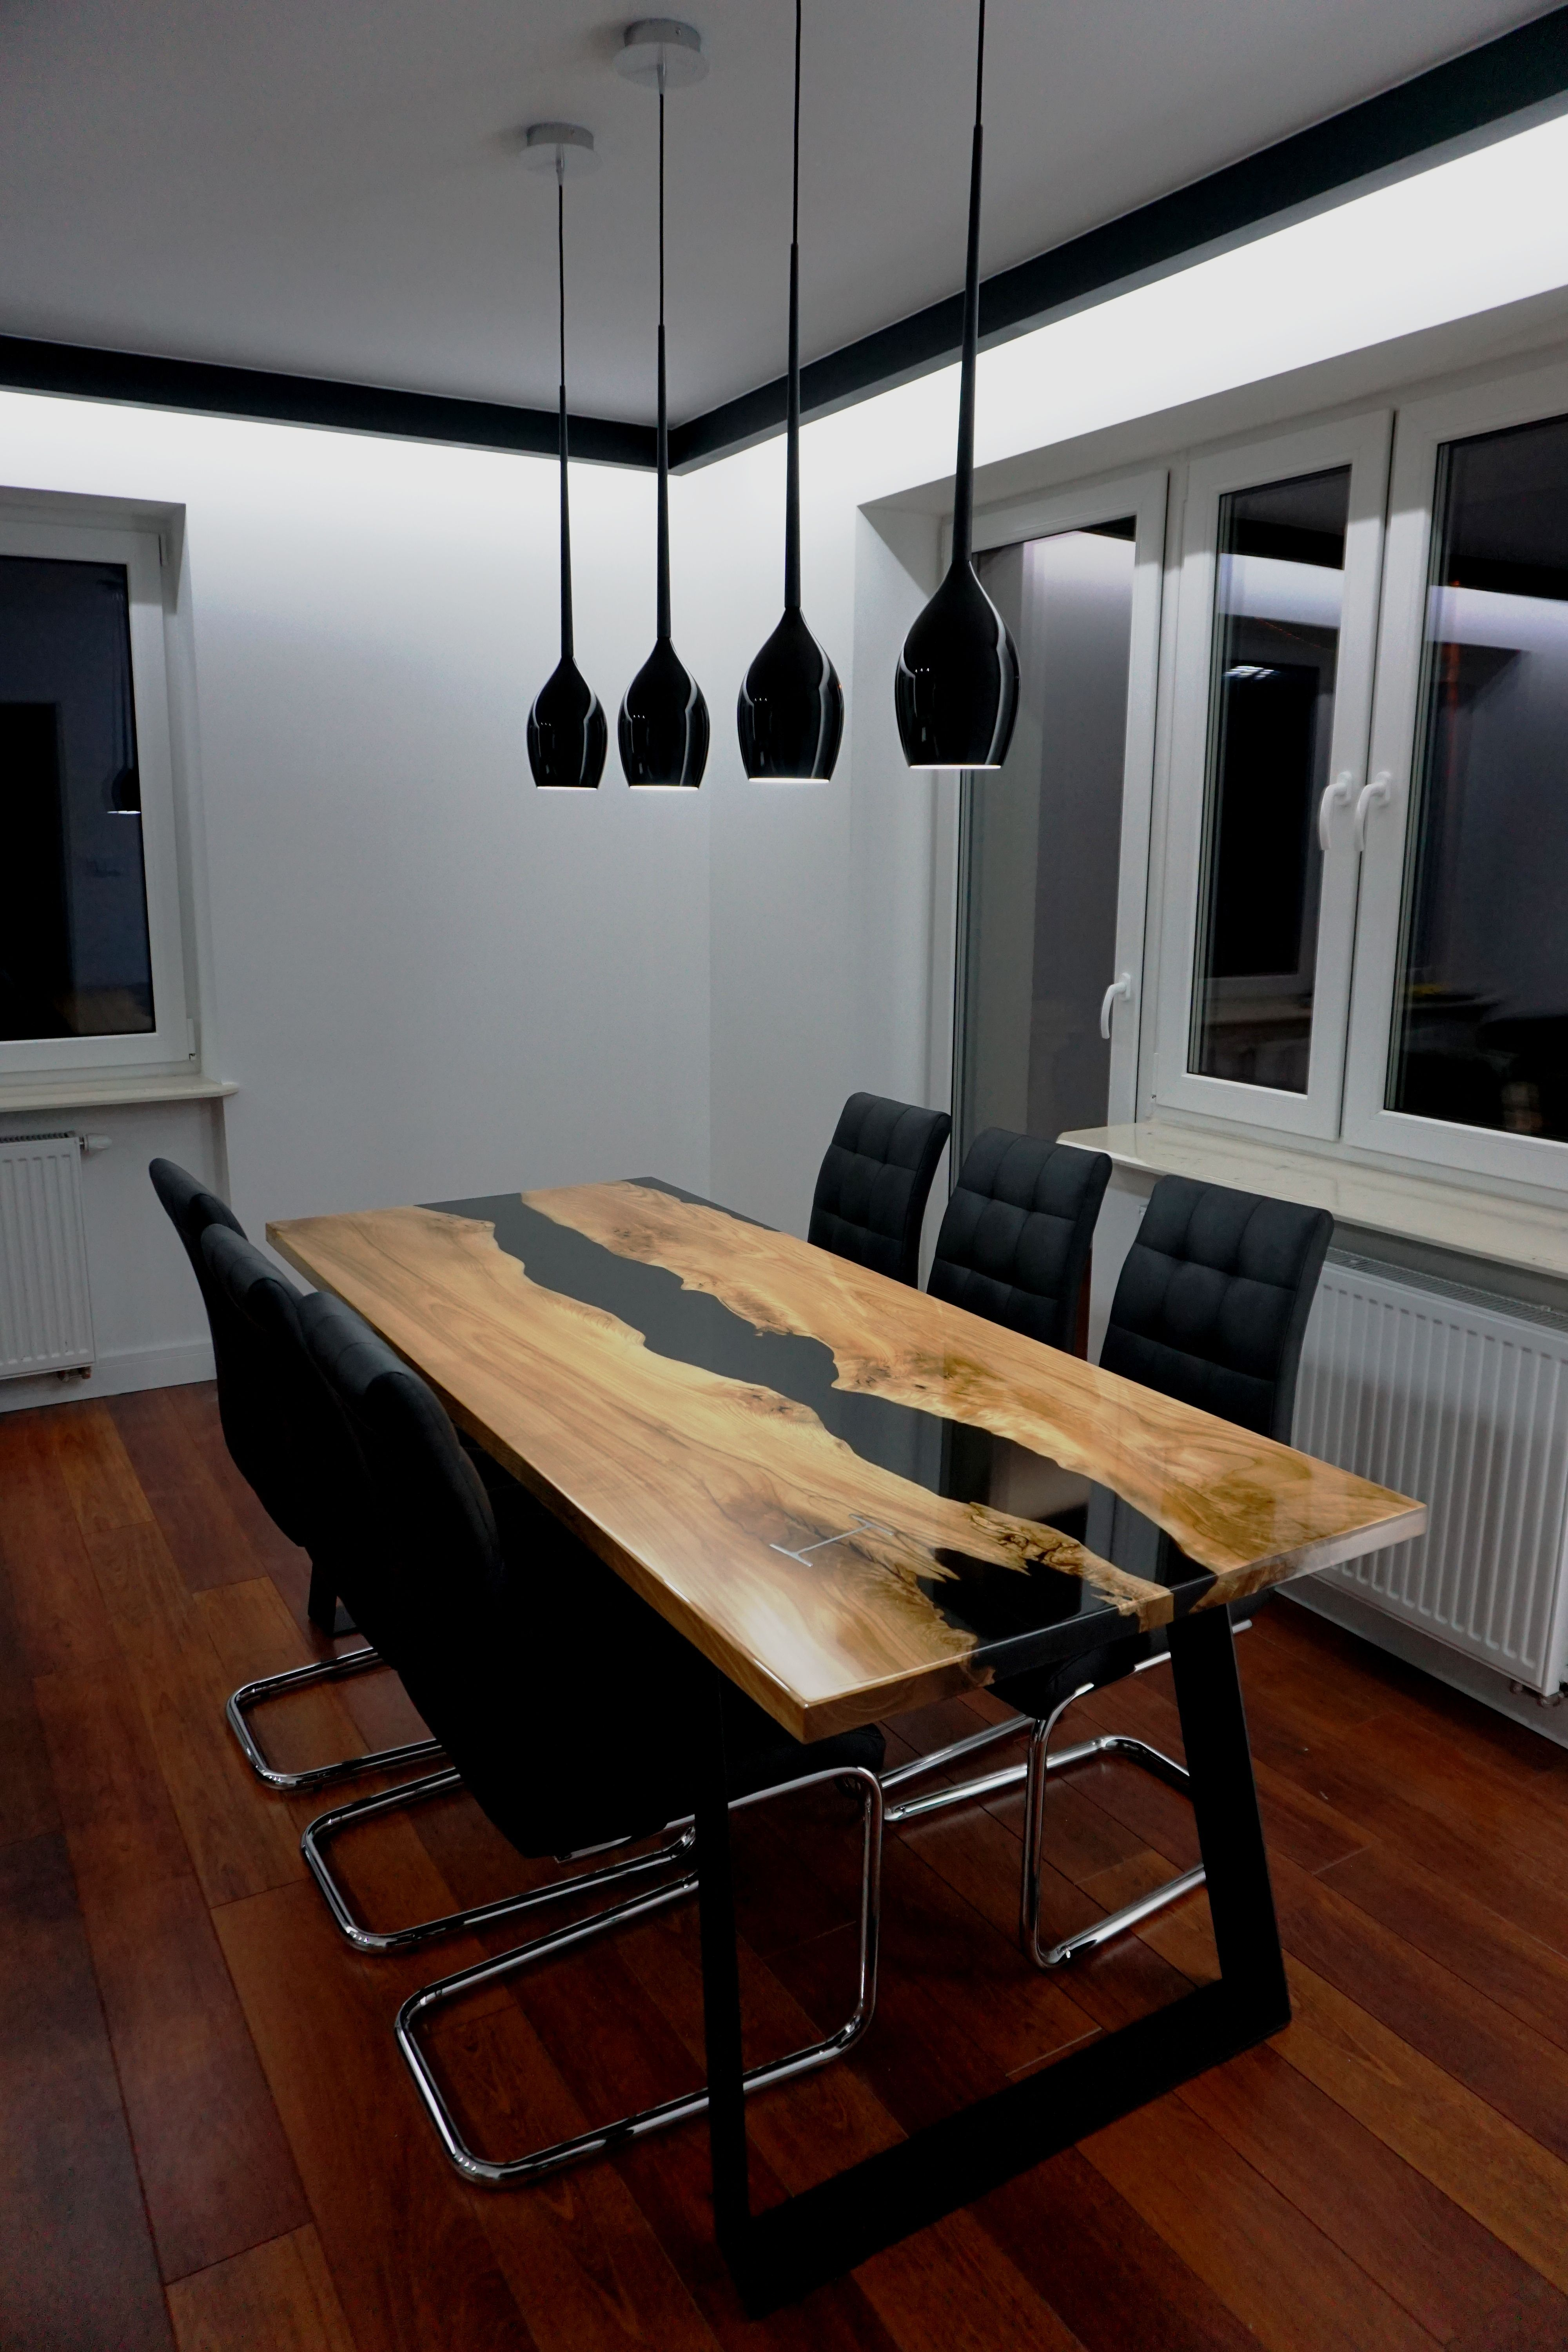 Black River Table Made To Order Unique Dining Tables Dining Table Design Wood Table Design